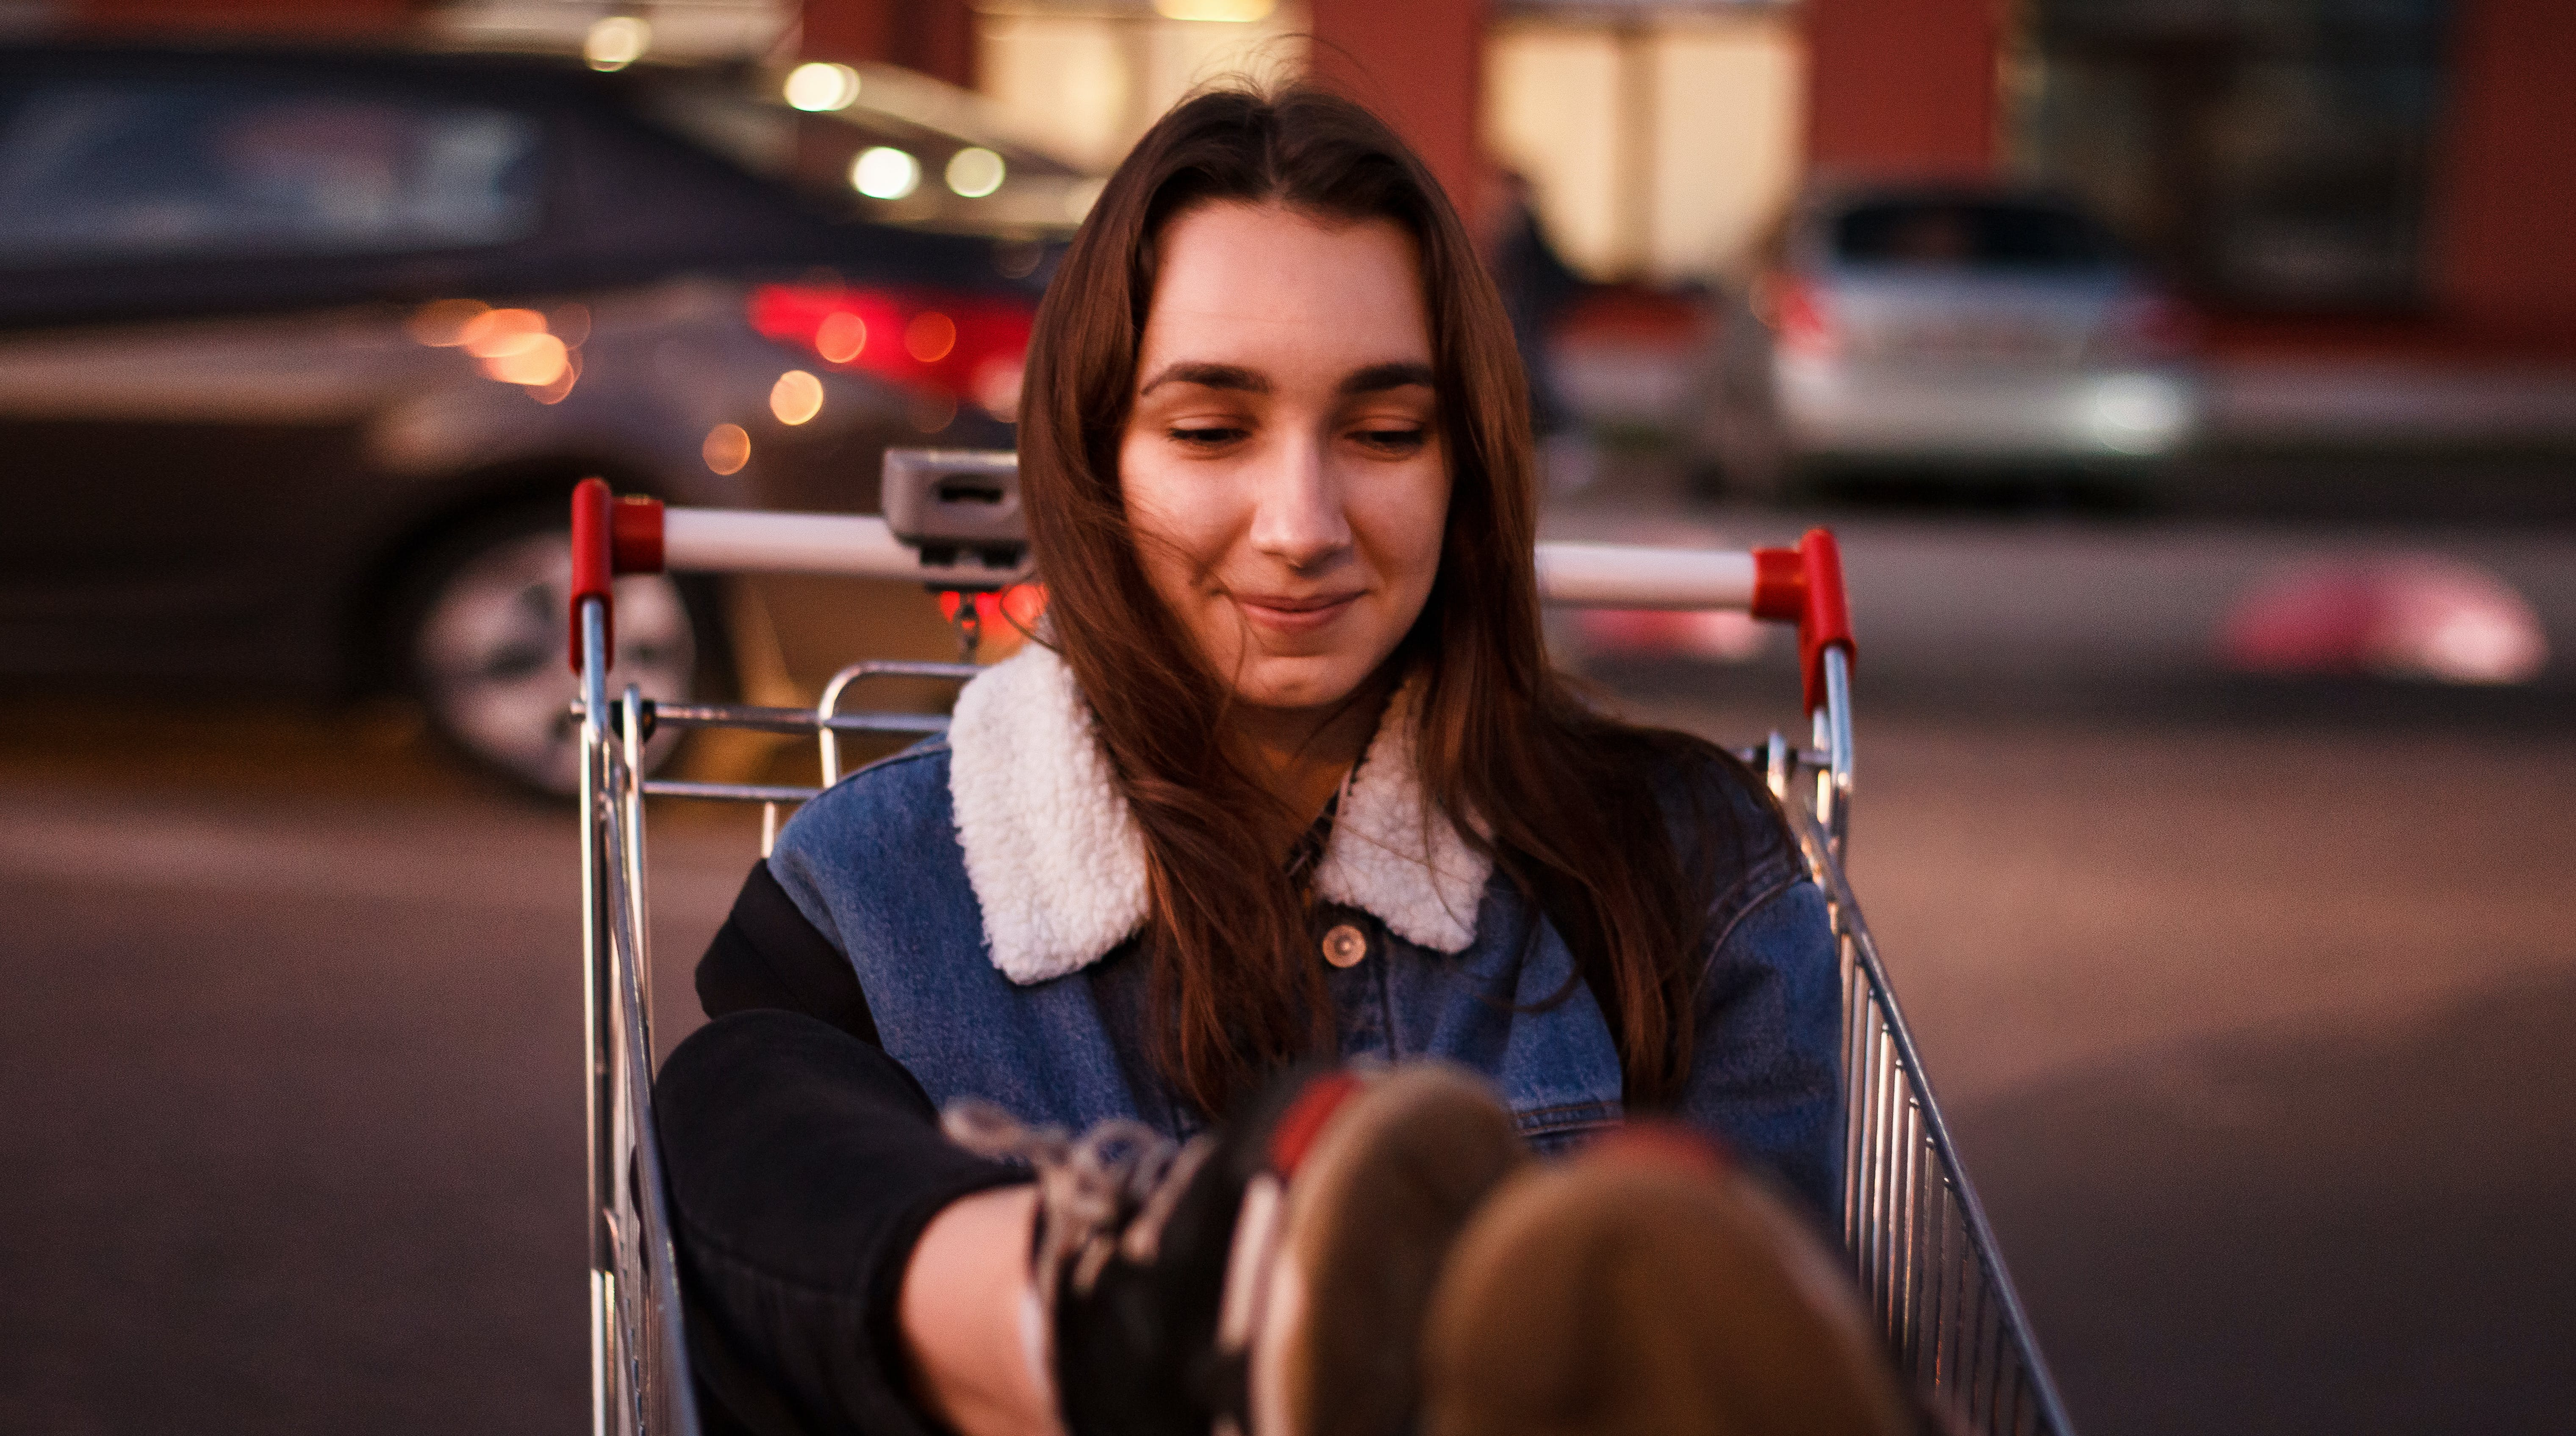 Close-Up Photo of Woman Riding Shopping Cart